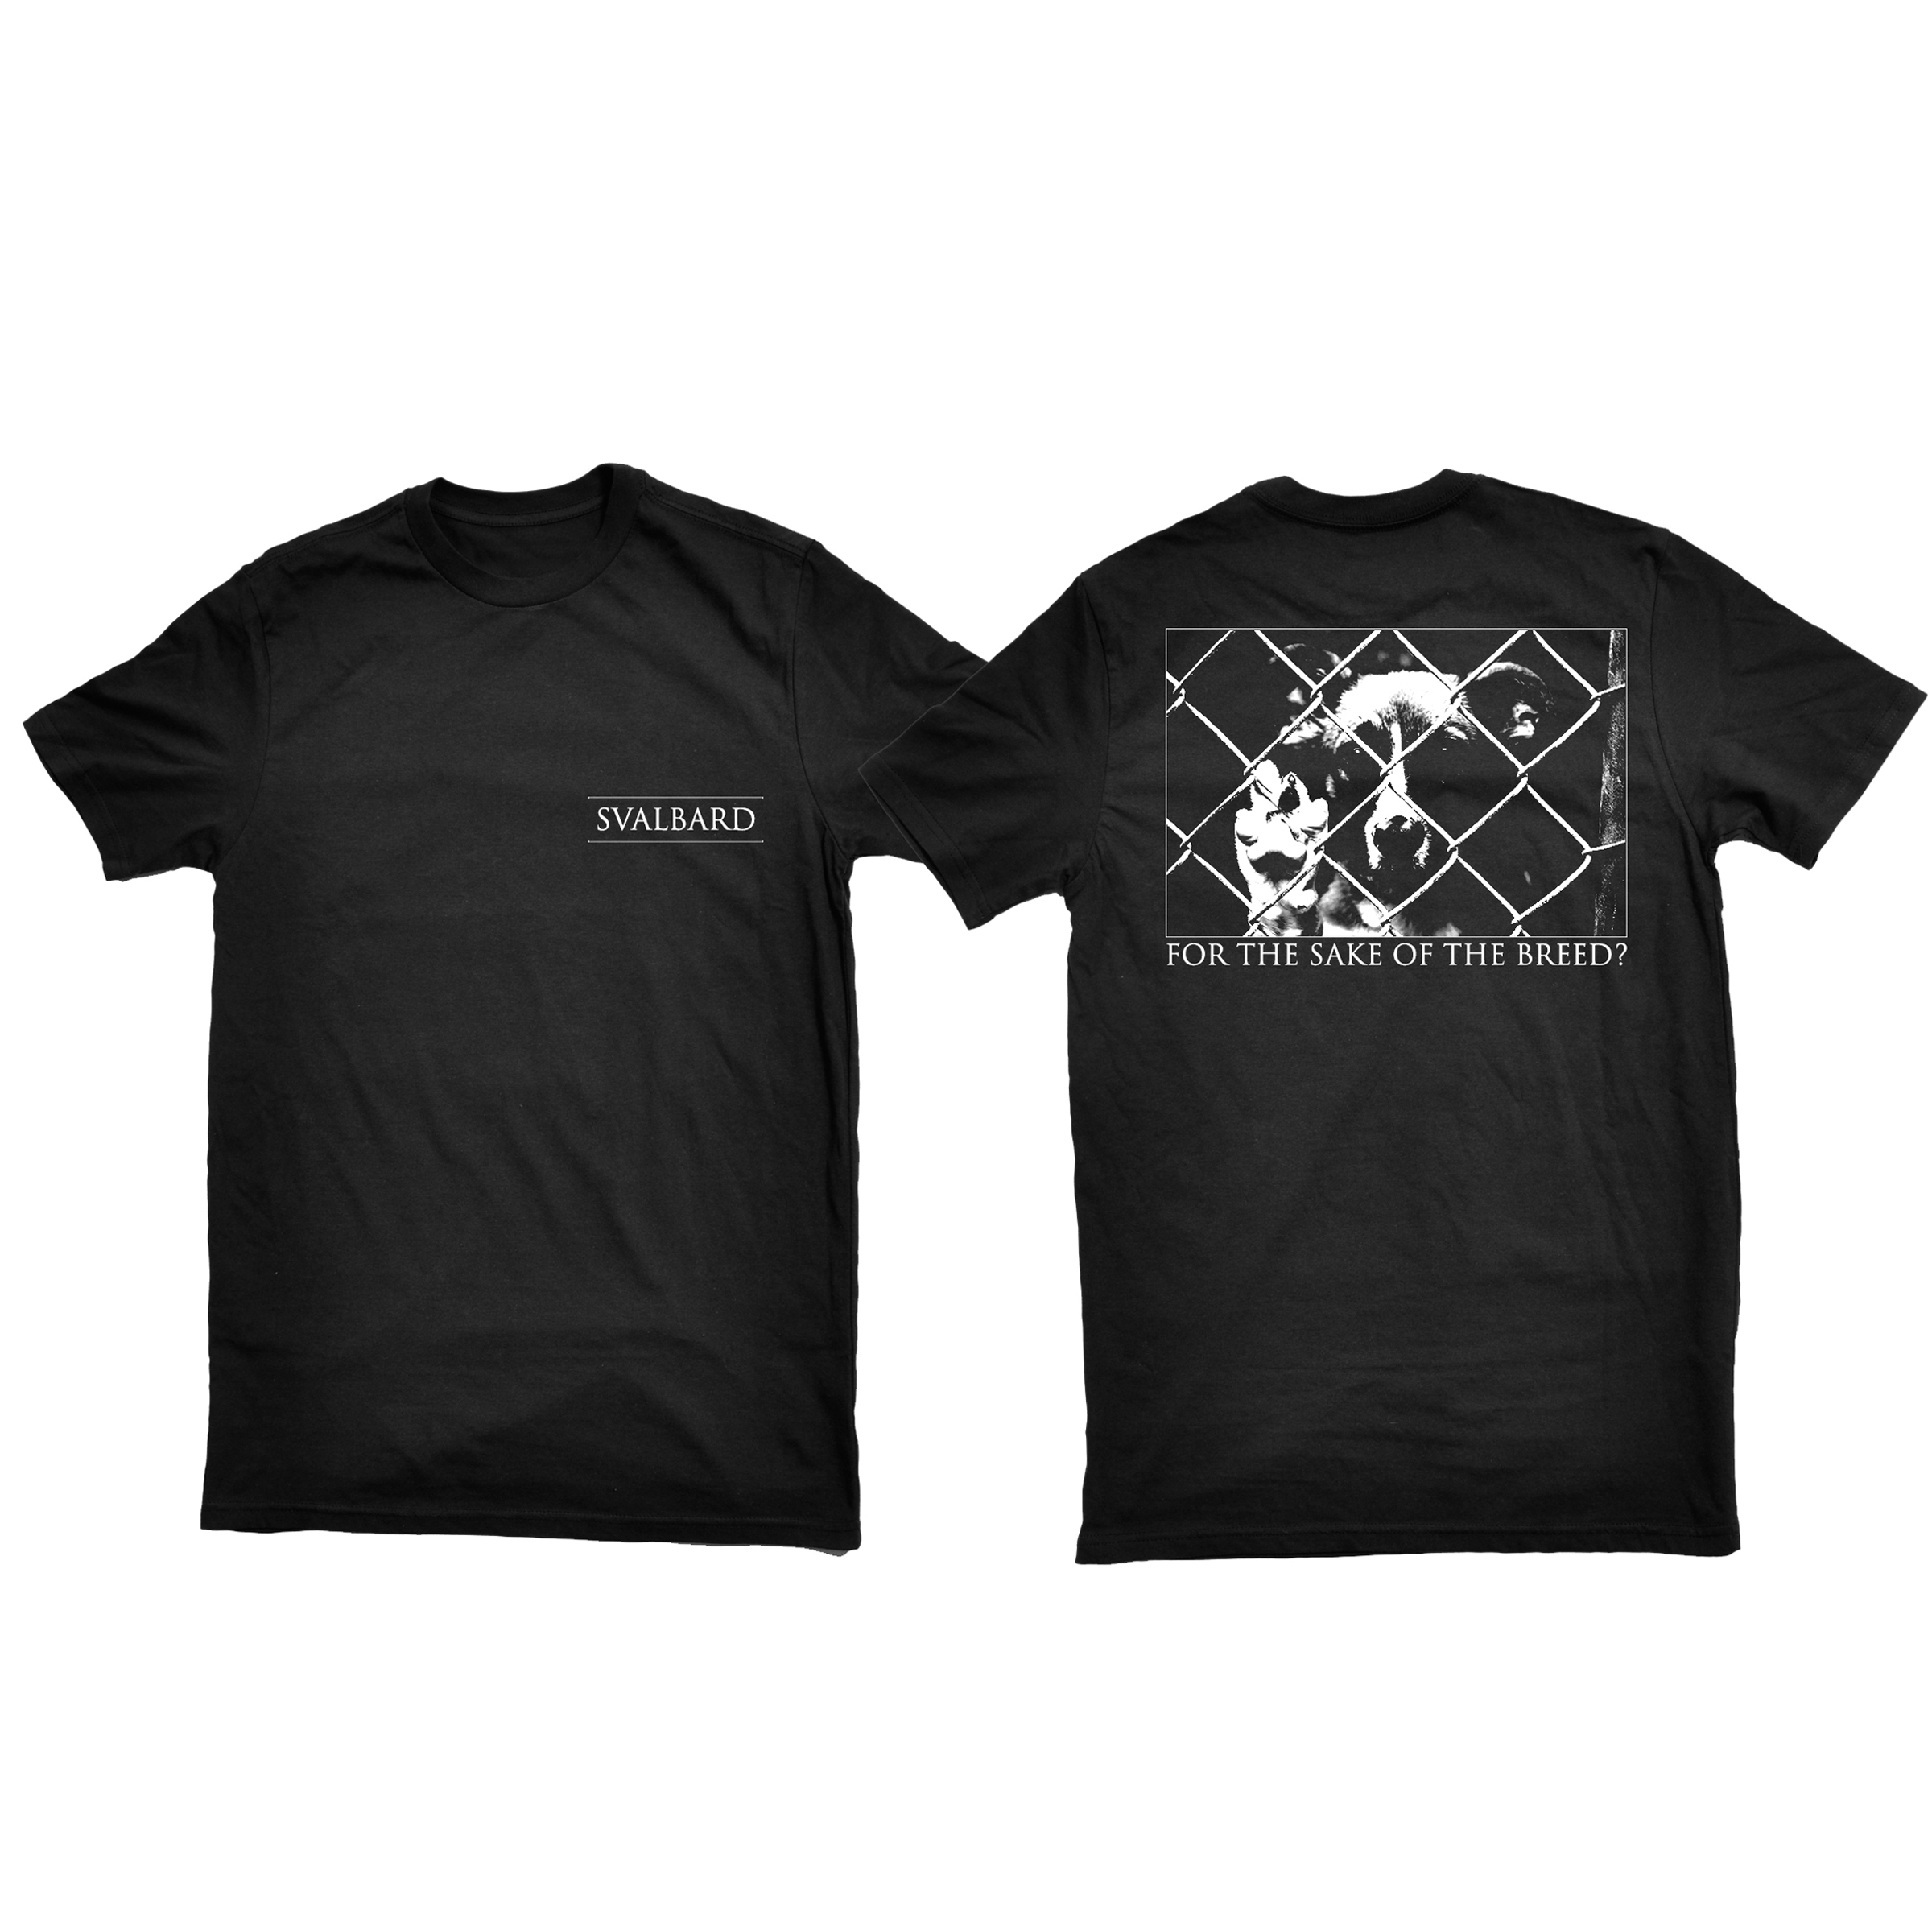 Svalbard - It's Hard To Have Hope shirt